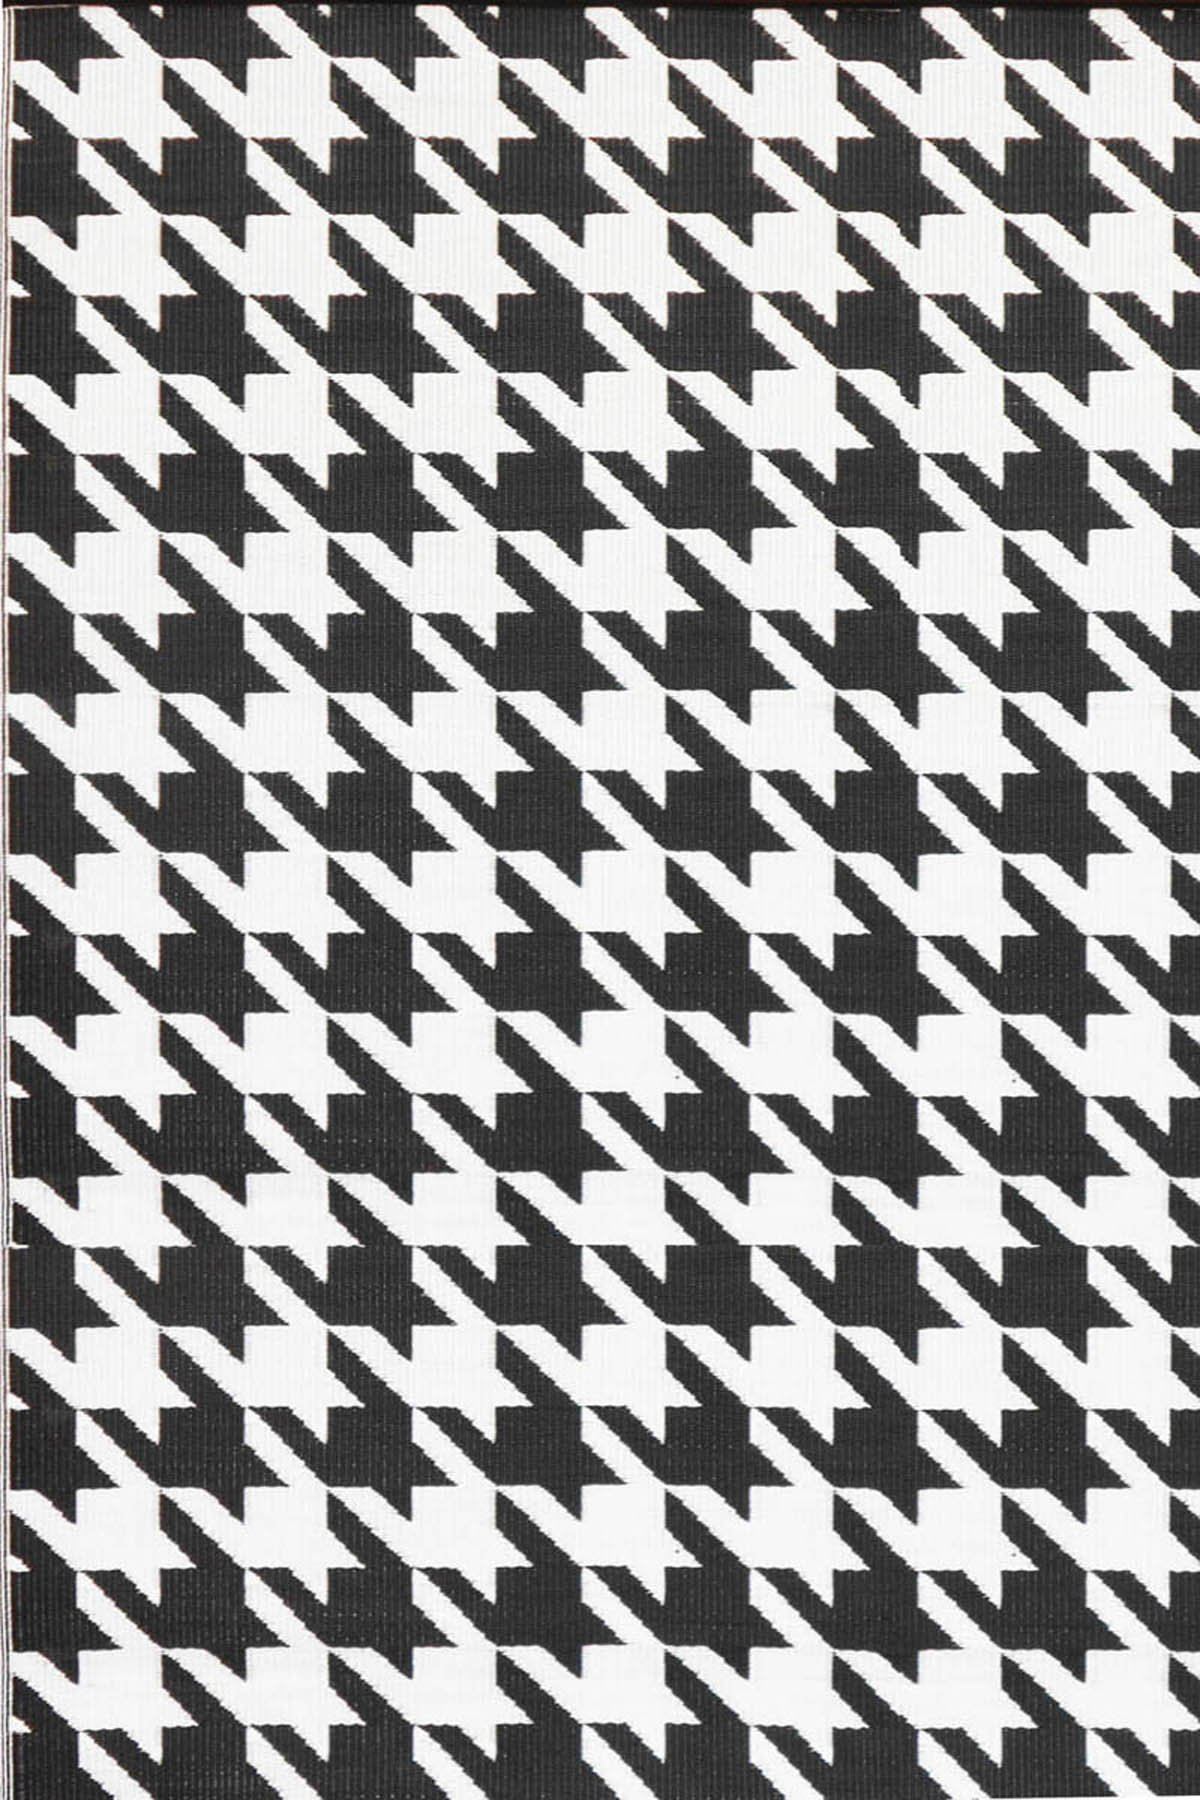 Mad Mats Hounds Tooth Indoor/Outdoor Floor Mat, 6 by 9-Feet, Black and White